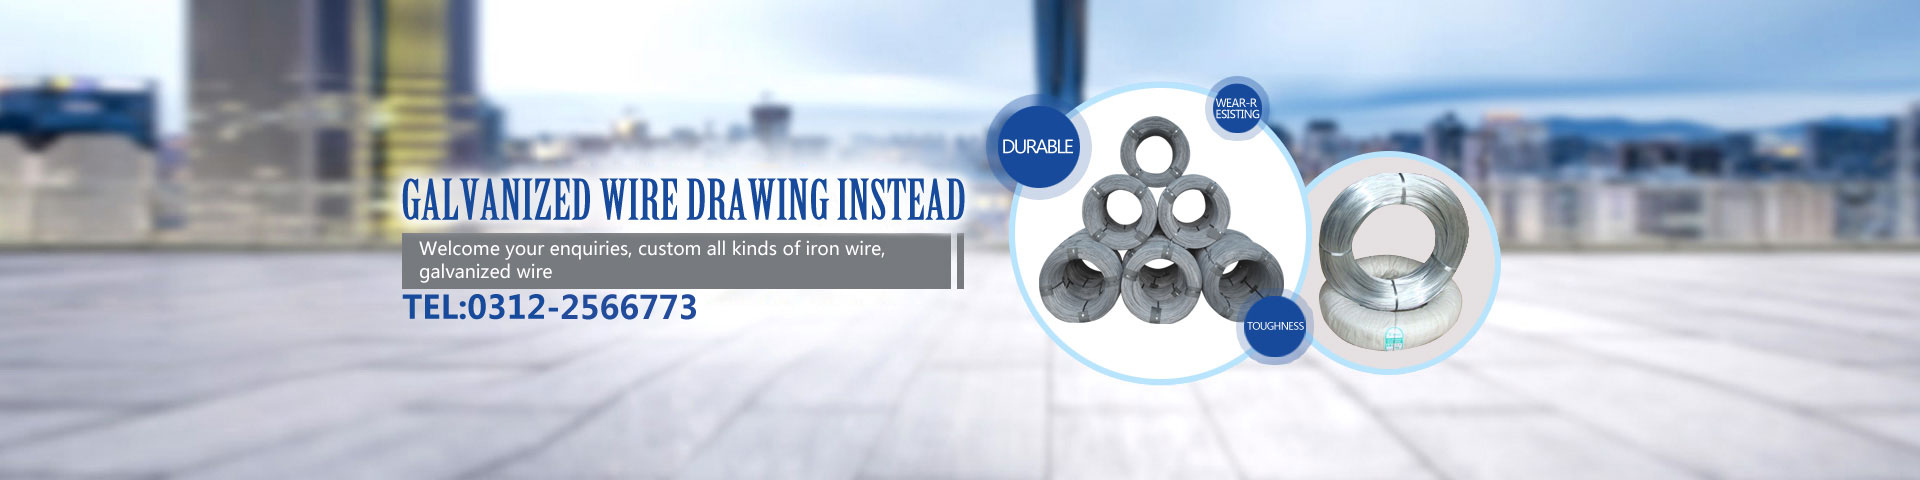 Galvanized wire drawing instead